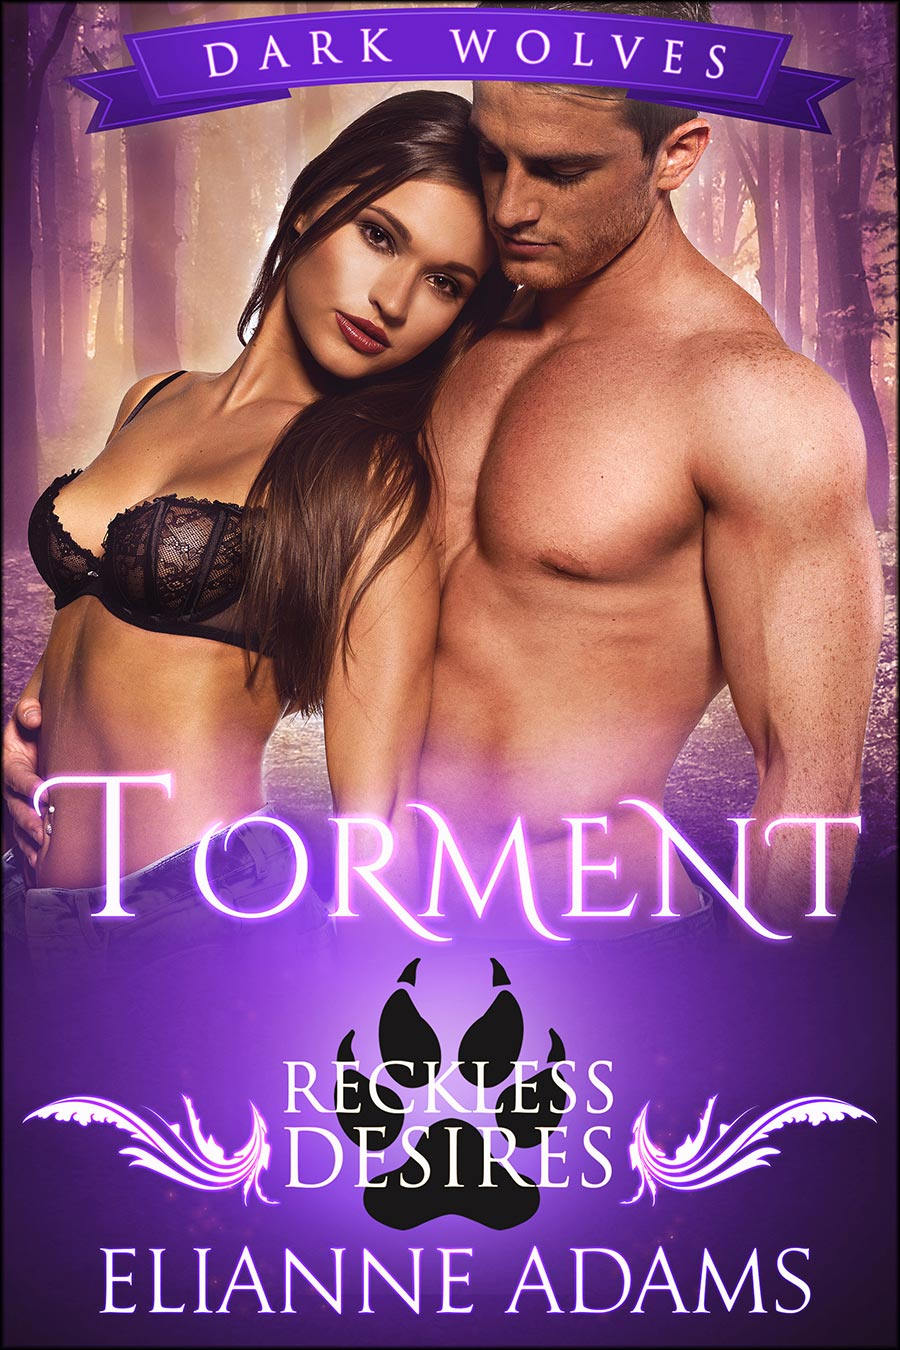 Dark-Wolves---Torment---Elianne-Adams---book-1.jpg